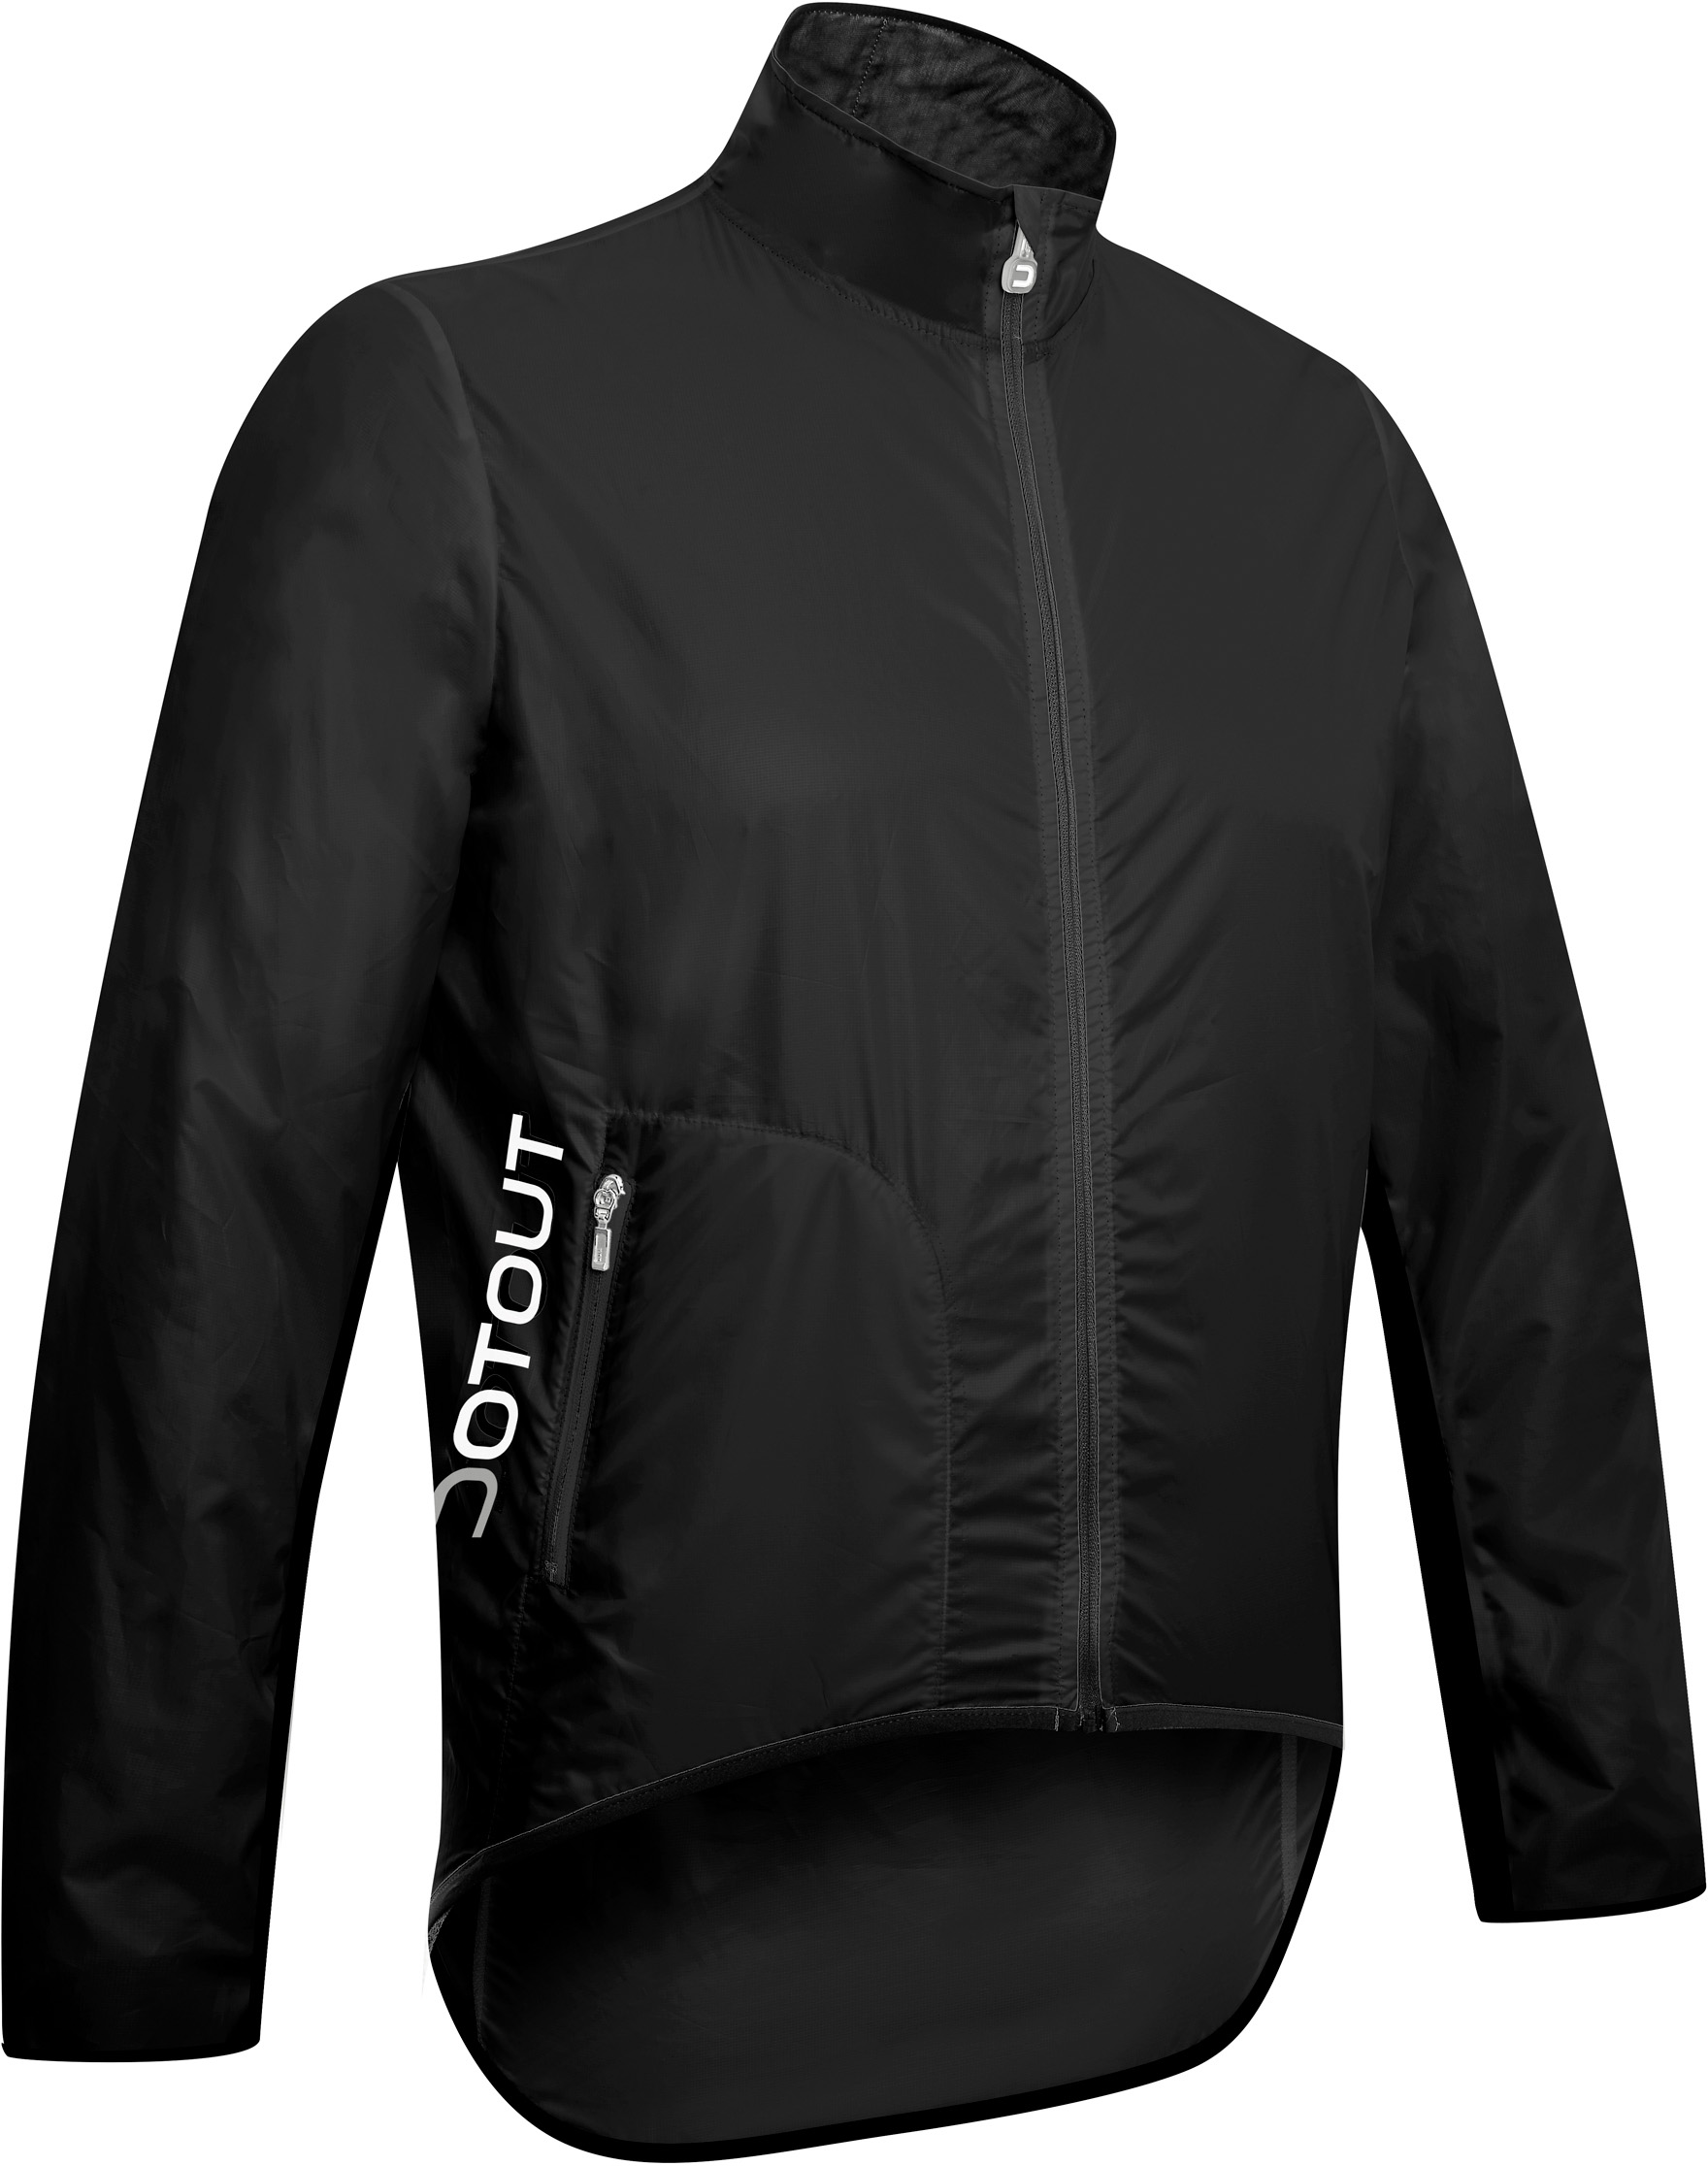 Dotout Tempo Pack Jacket | Jackets